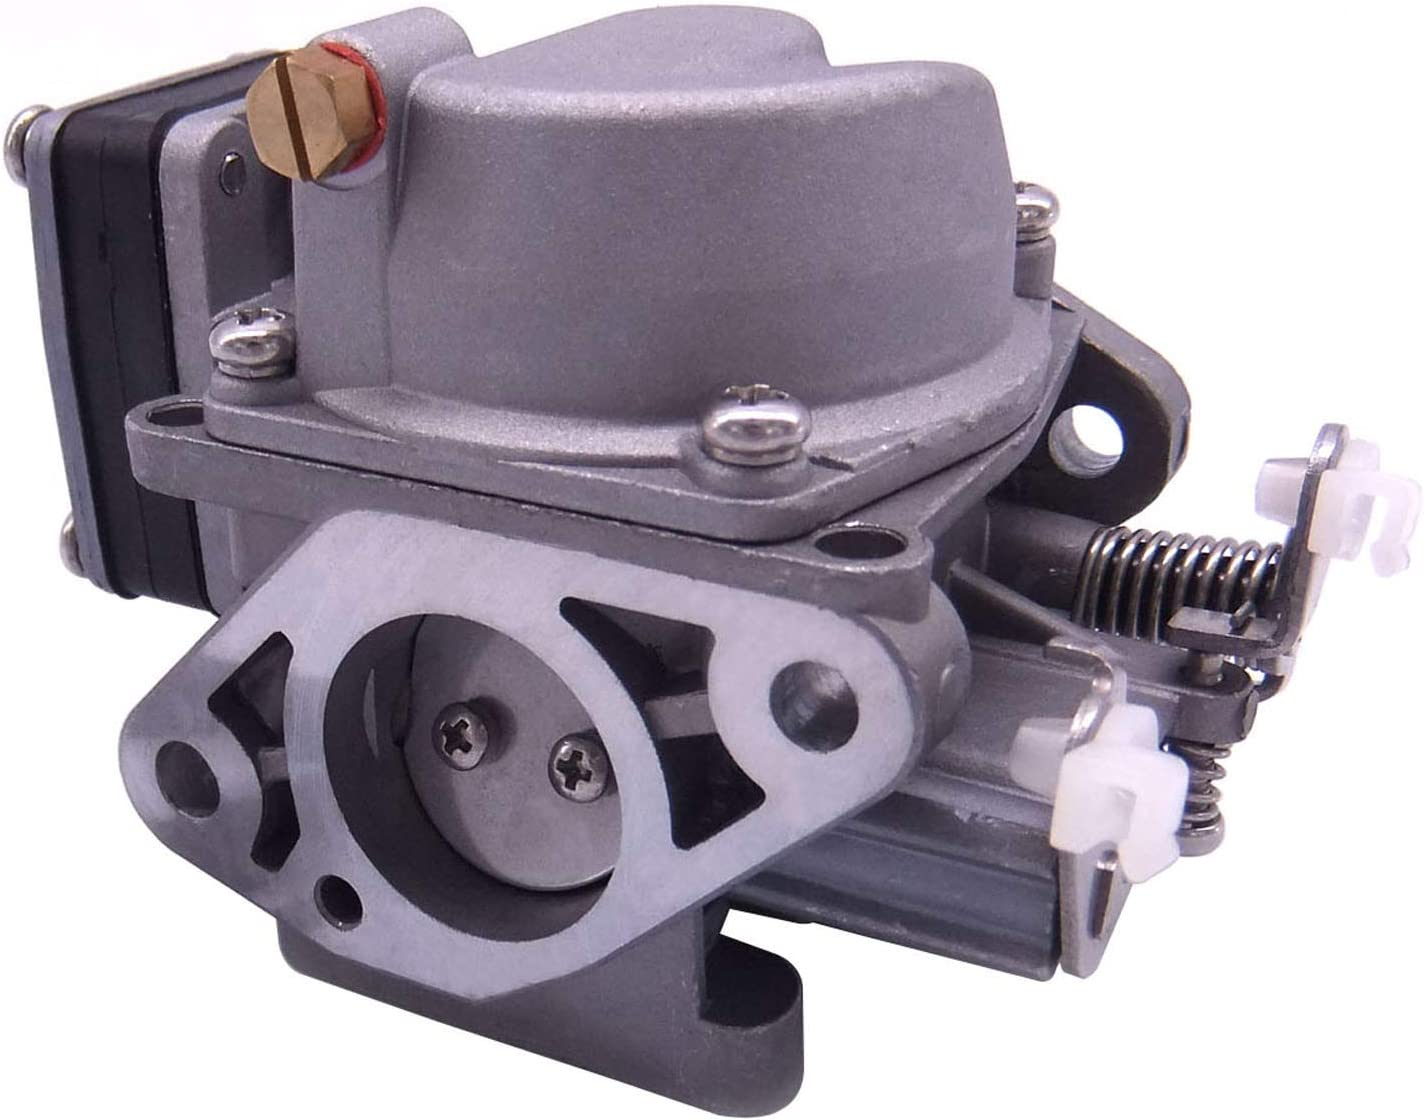 3B2-03200-1 3B2-03200 3G0-03200 Carburetor Assy for Tohatsu Nissan 2-stroke 9.8HP M9.8 NS9.8 Outboard motors